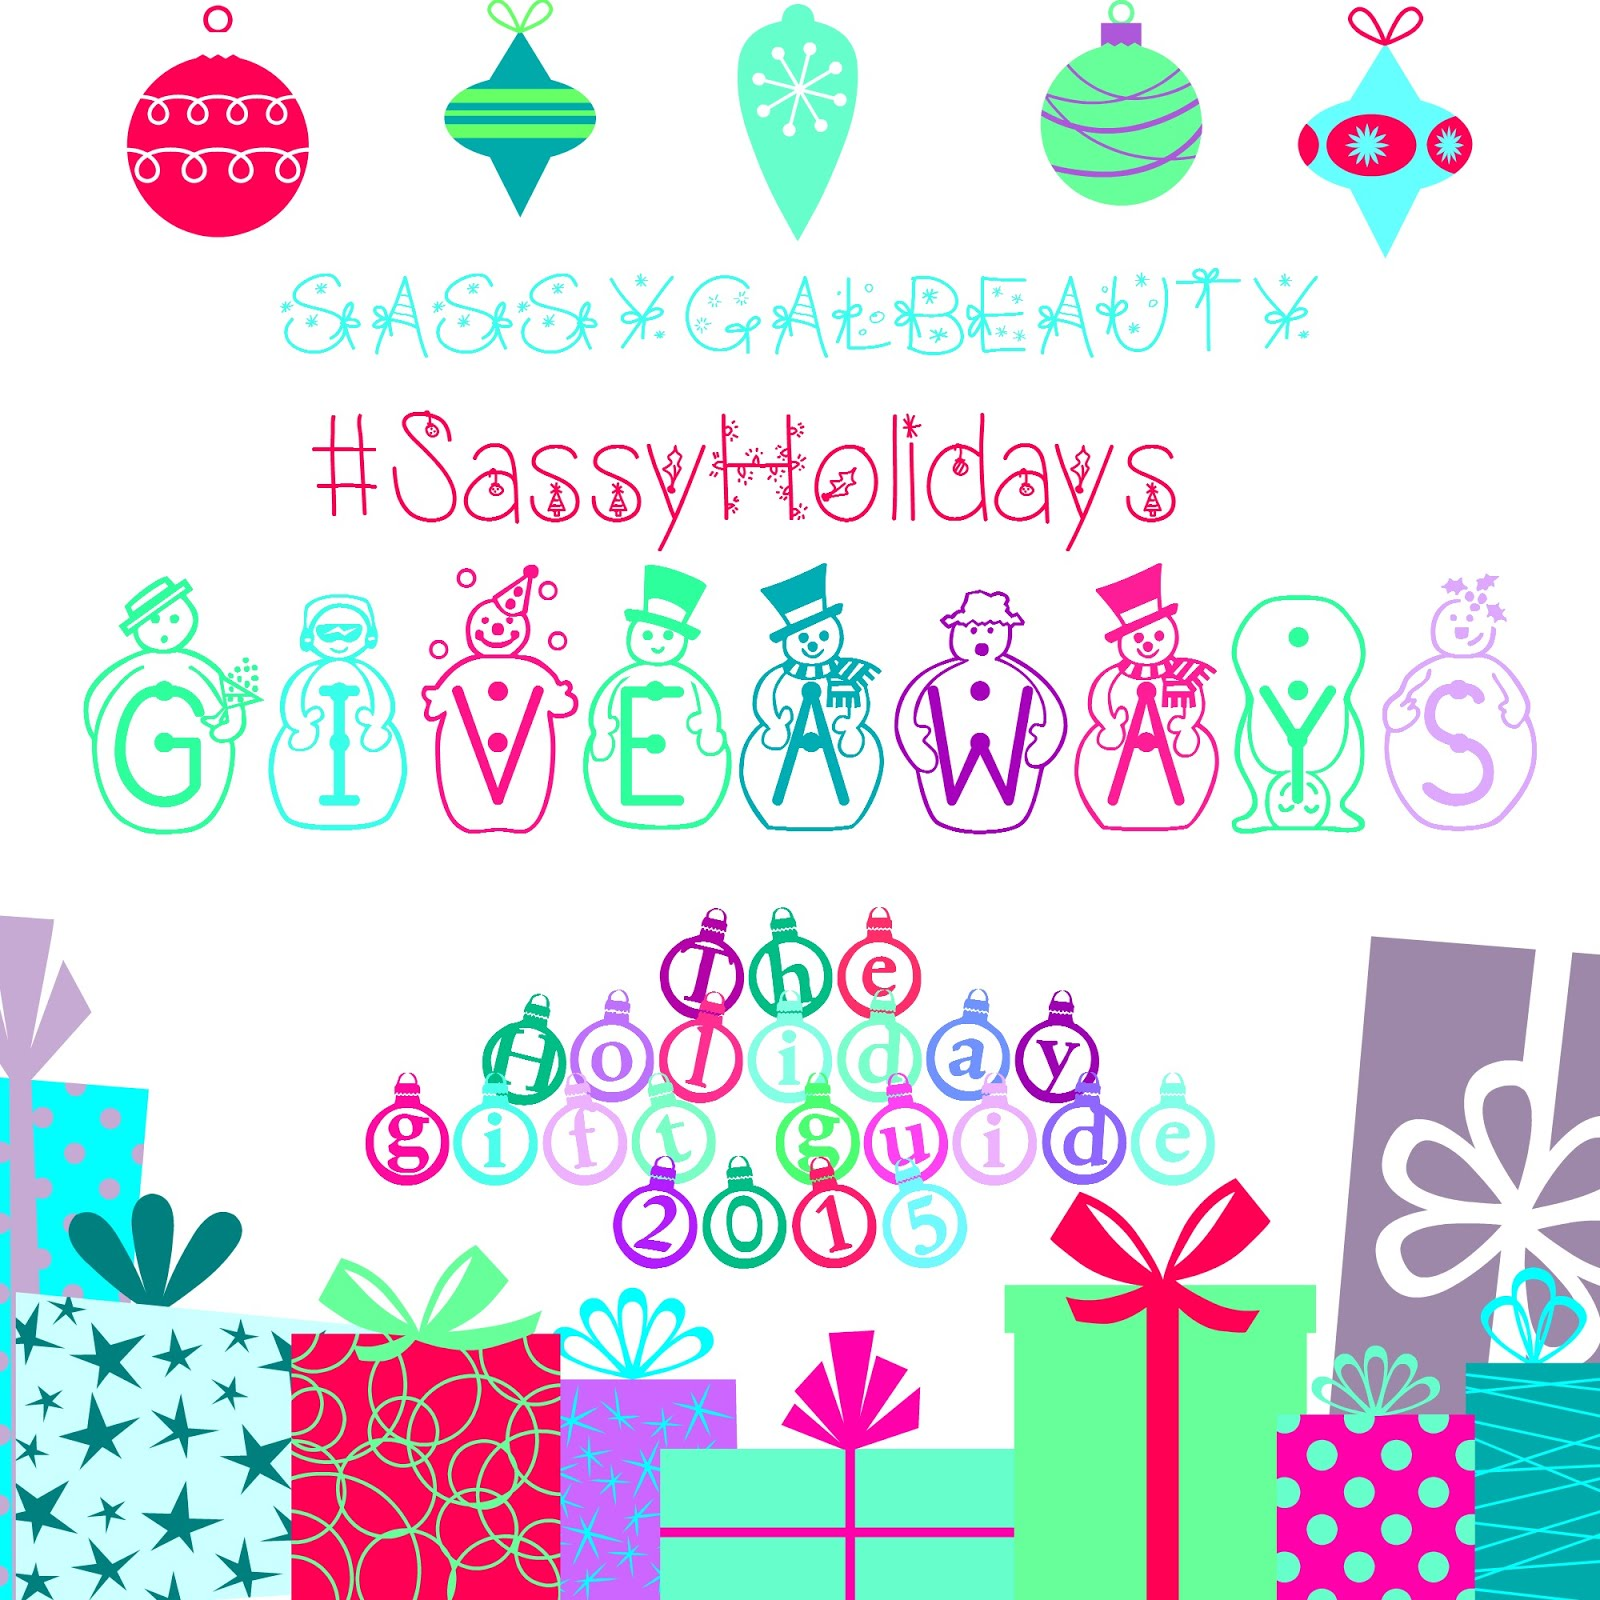 #SassyHolidays Holiday Giveaways